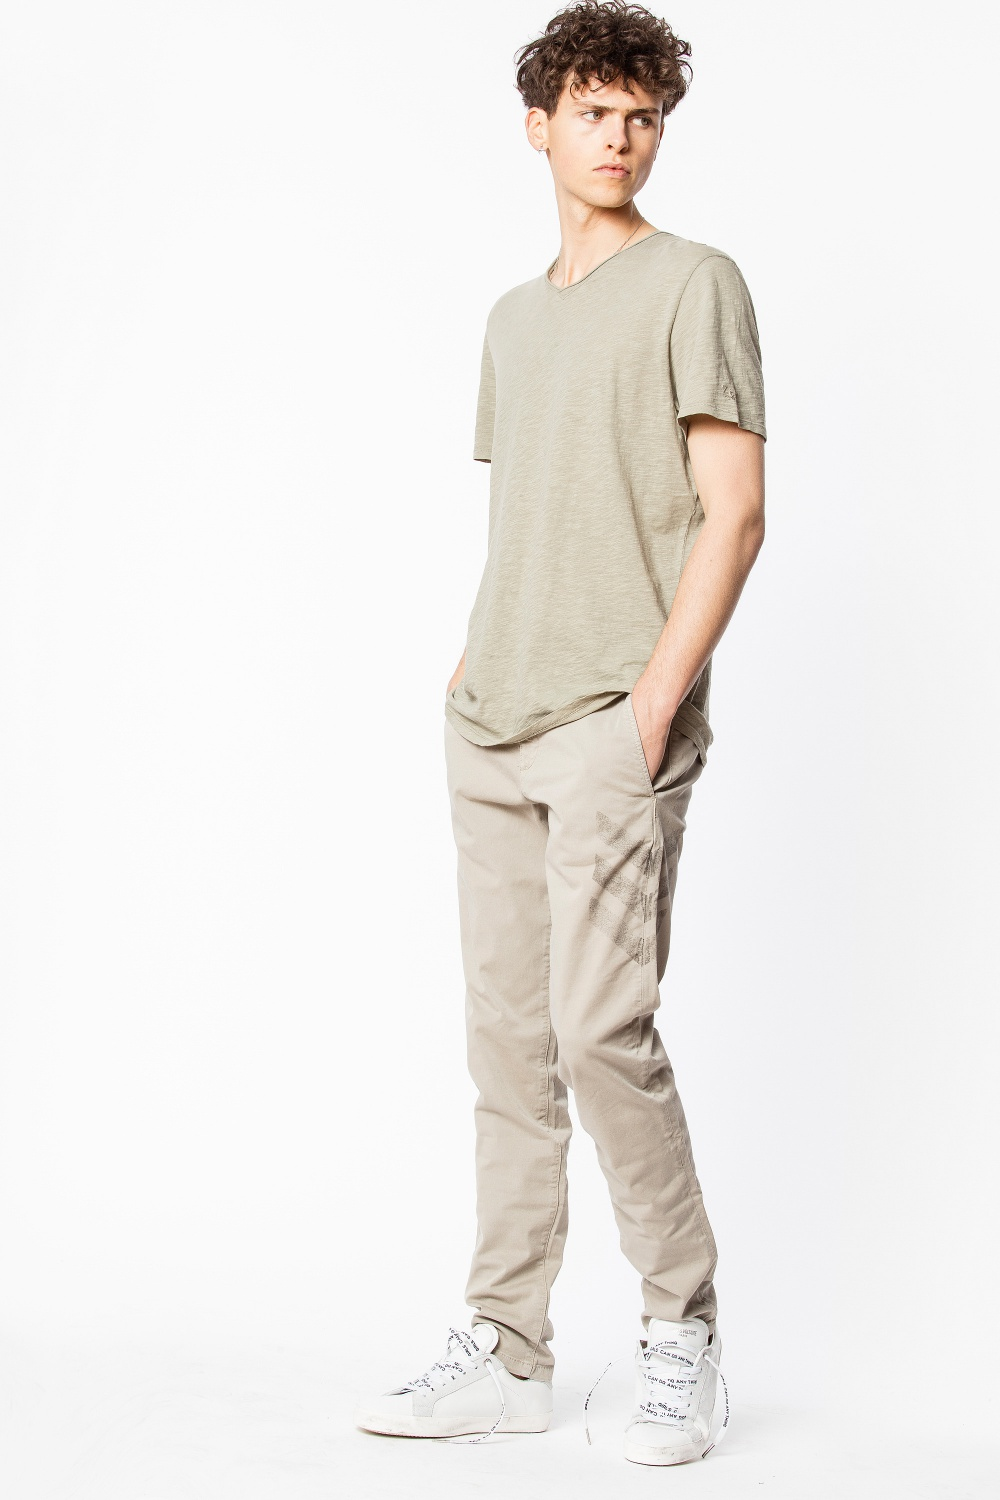 TERRY T-SHIRT - Looking for an overdyed V-neck T-shirt with short sleeves and cut-out chest pocket? This might just be what you are looking for.